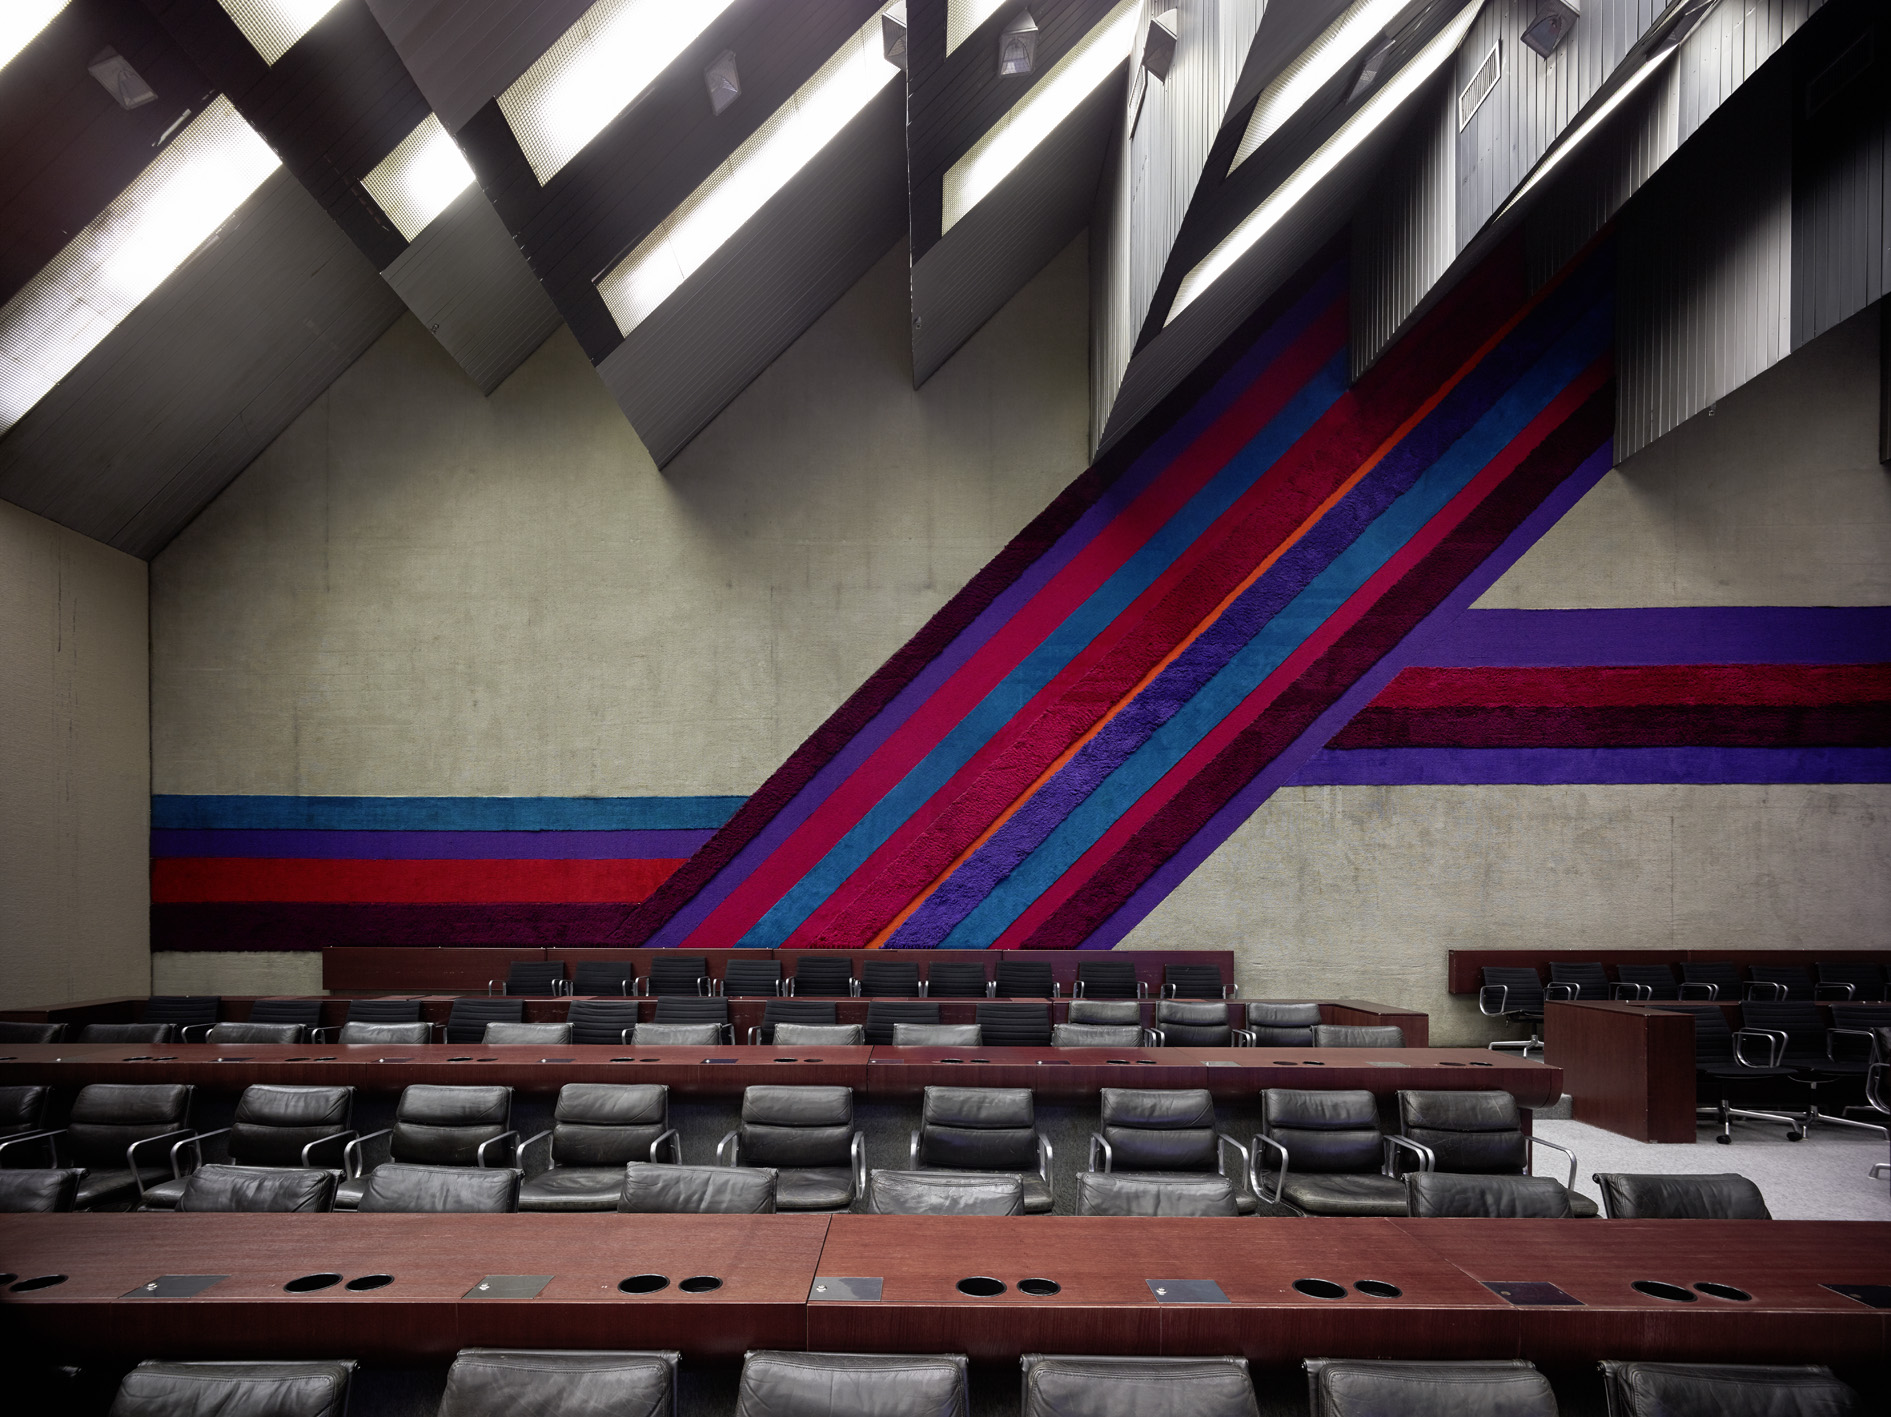 Stojan Maksimovi?, Sava Center, 1979, Belgrade, Serbia. View of conference room. Photo: Valentin Jeck, commissioned by The Museum of Modern Art, New York, 2016.